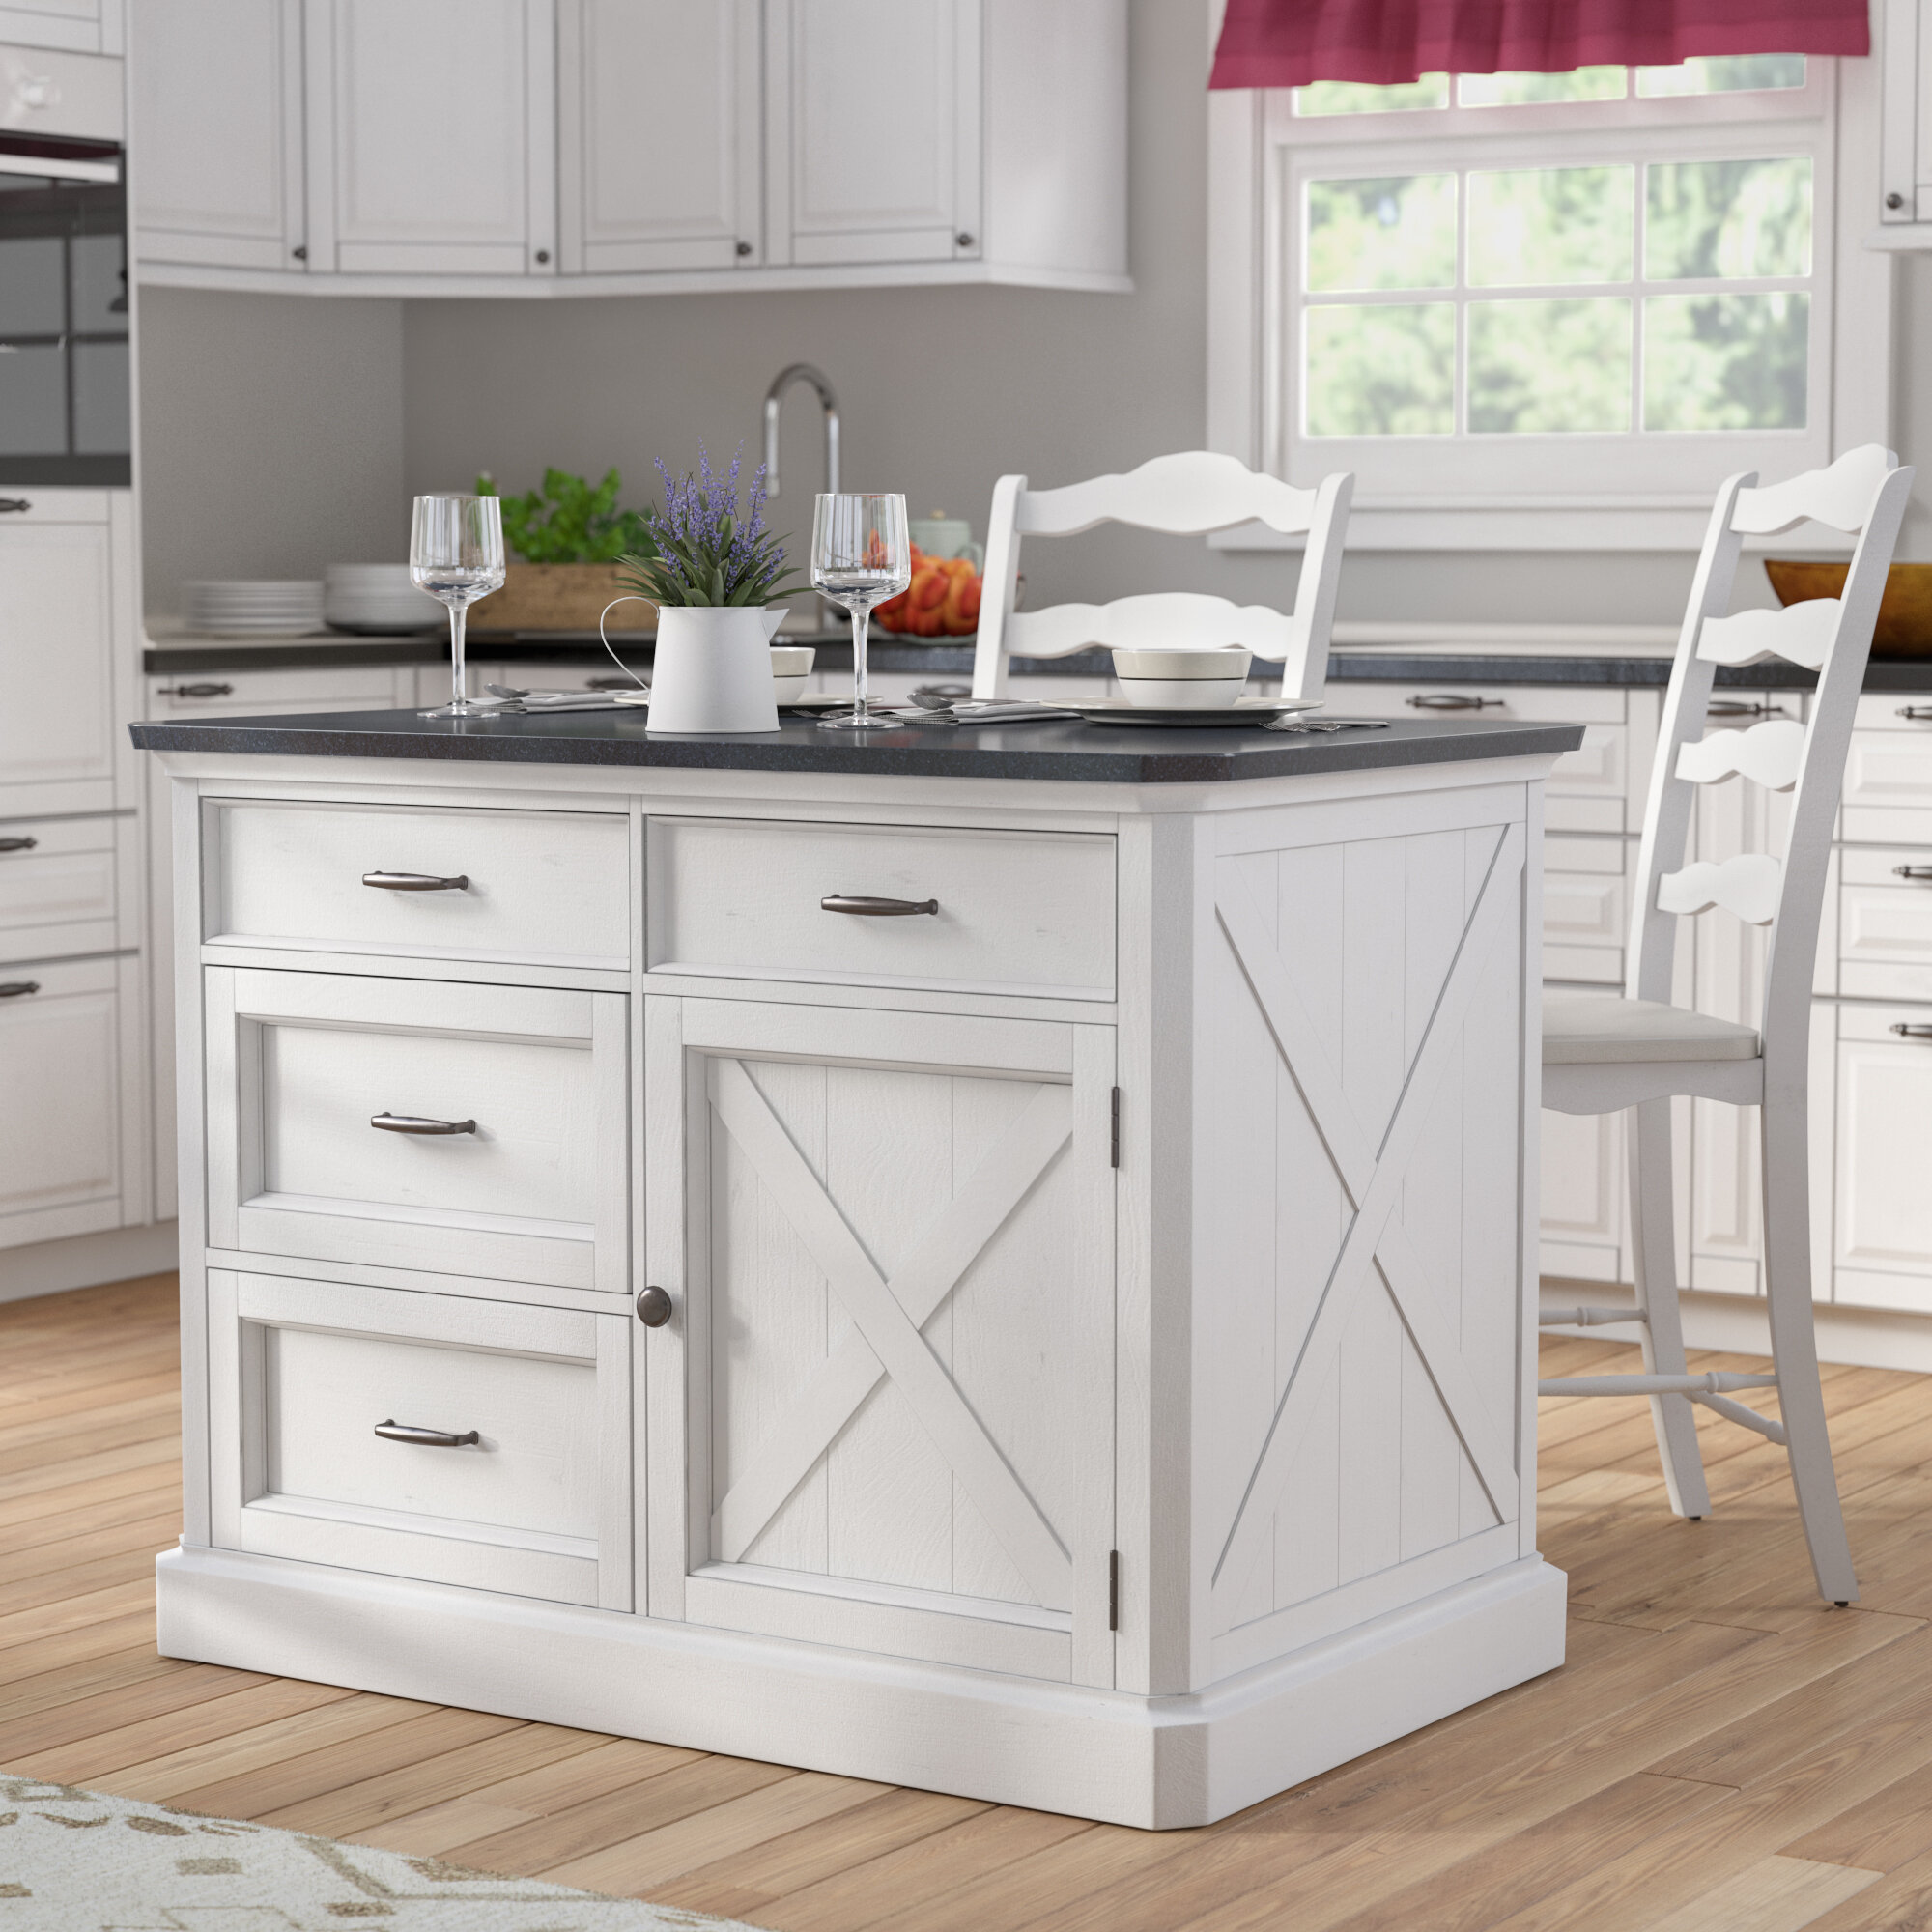 Laurel Foundry Modern Farmhouse Ryles 3 Piece Kitchen Island Set With Engineered Quartz Top Wayfair